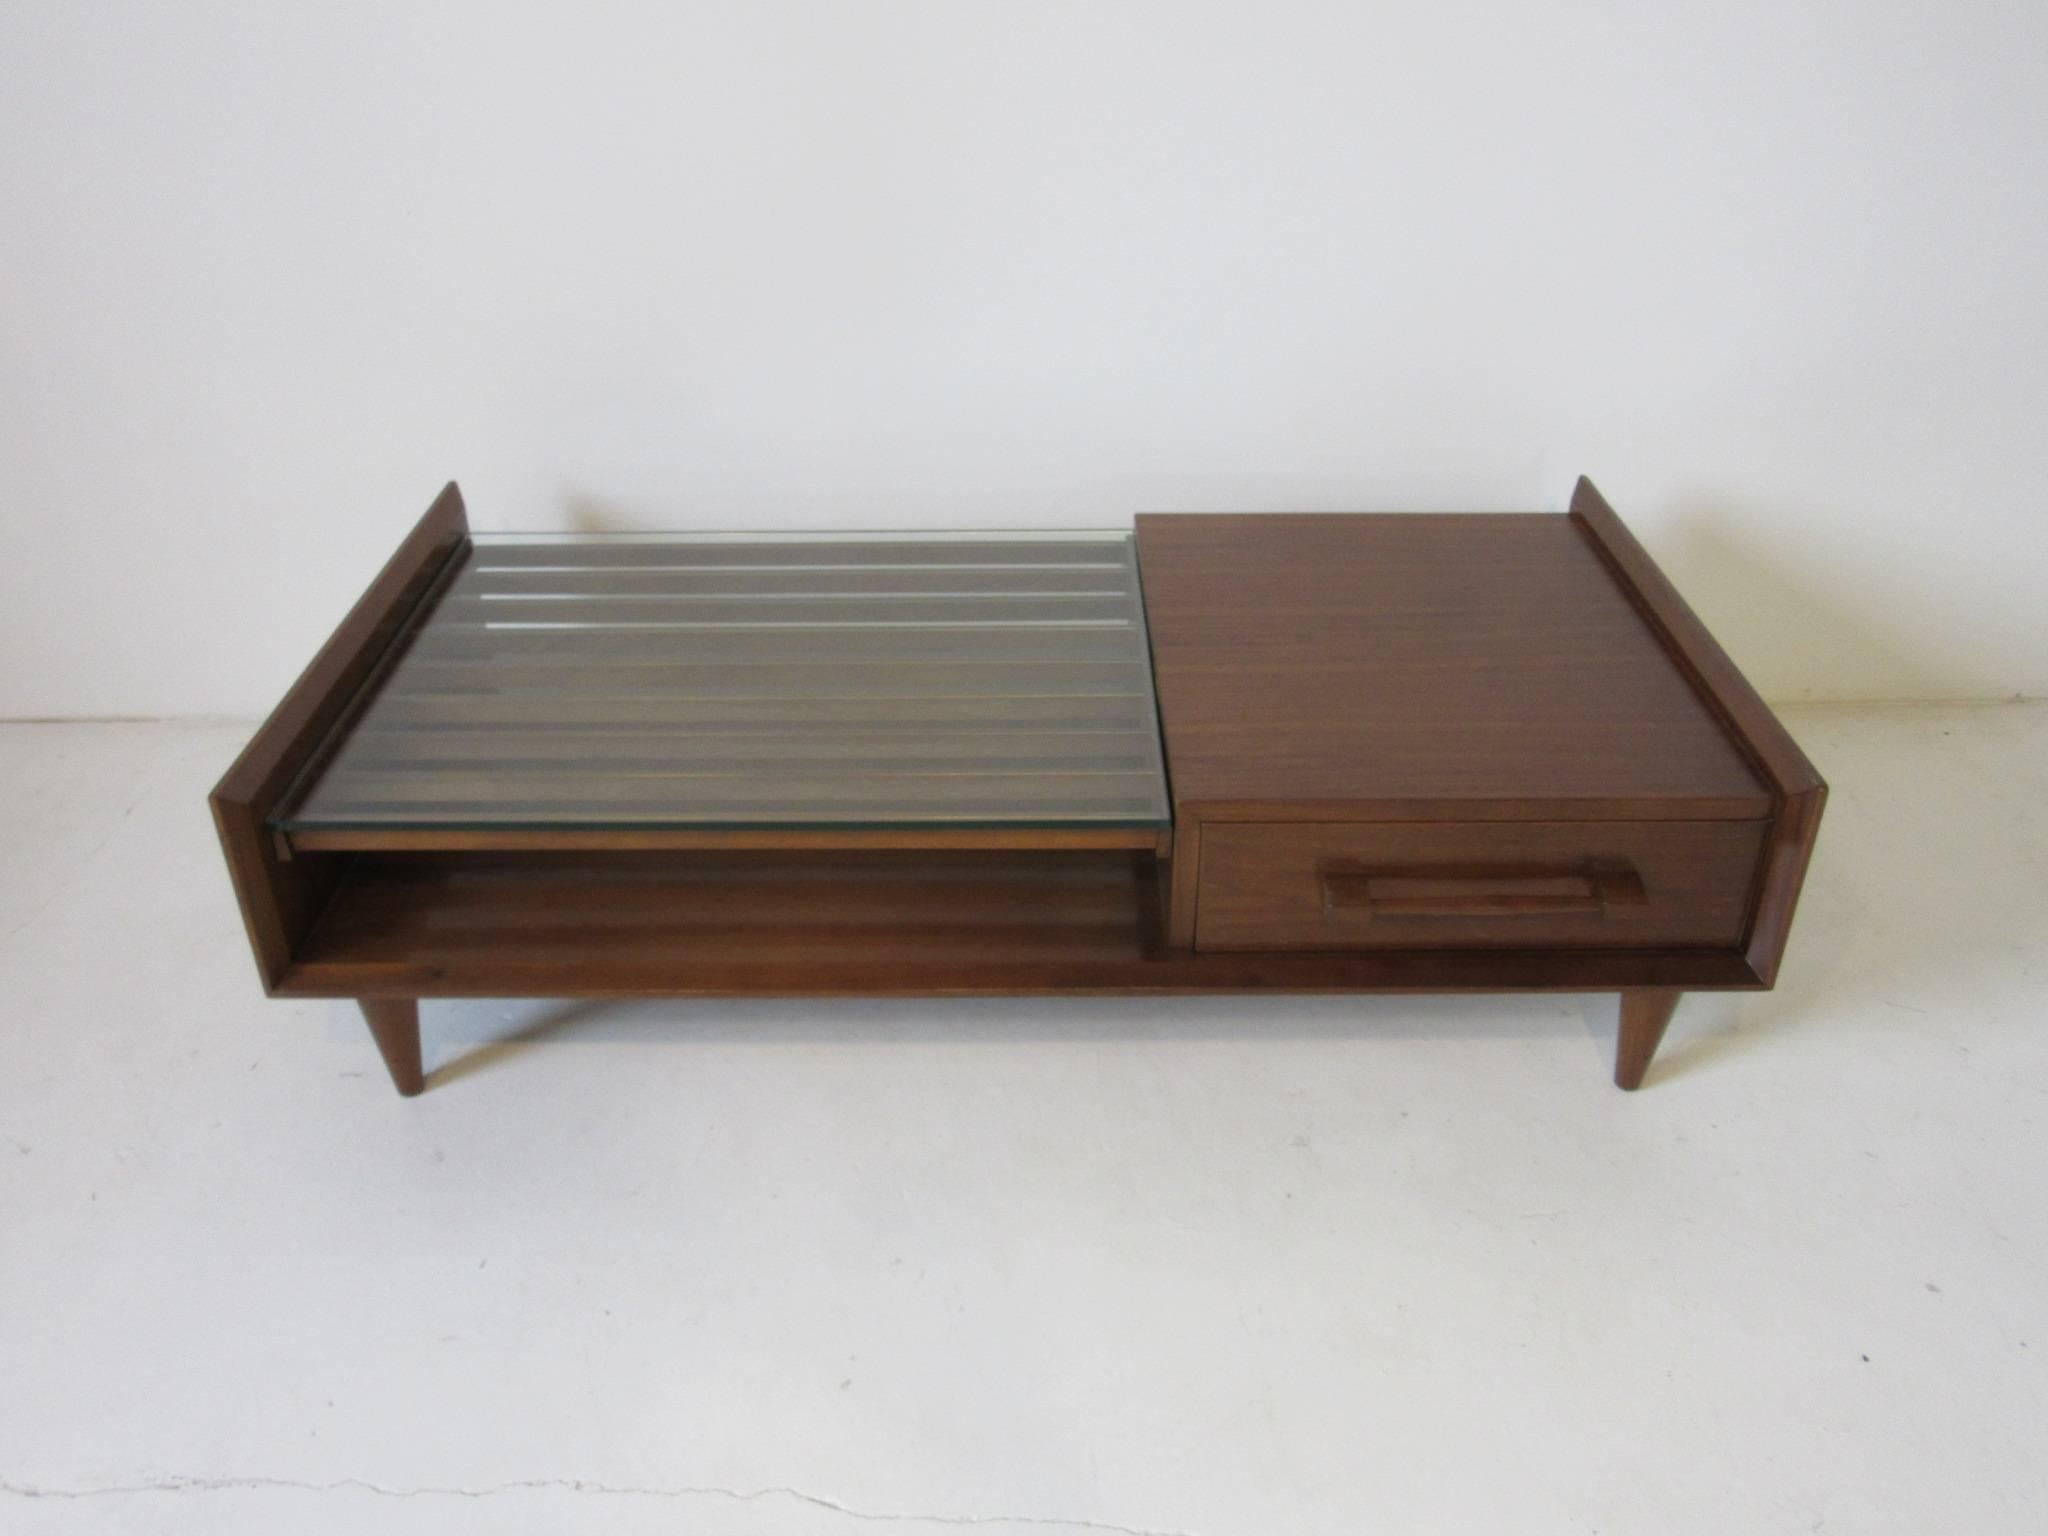 A Rich Dark Walnut Coffee Table With Single Drawer, Conical Legs And A  Interesting Open